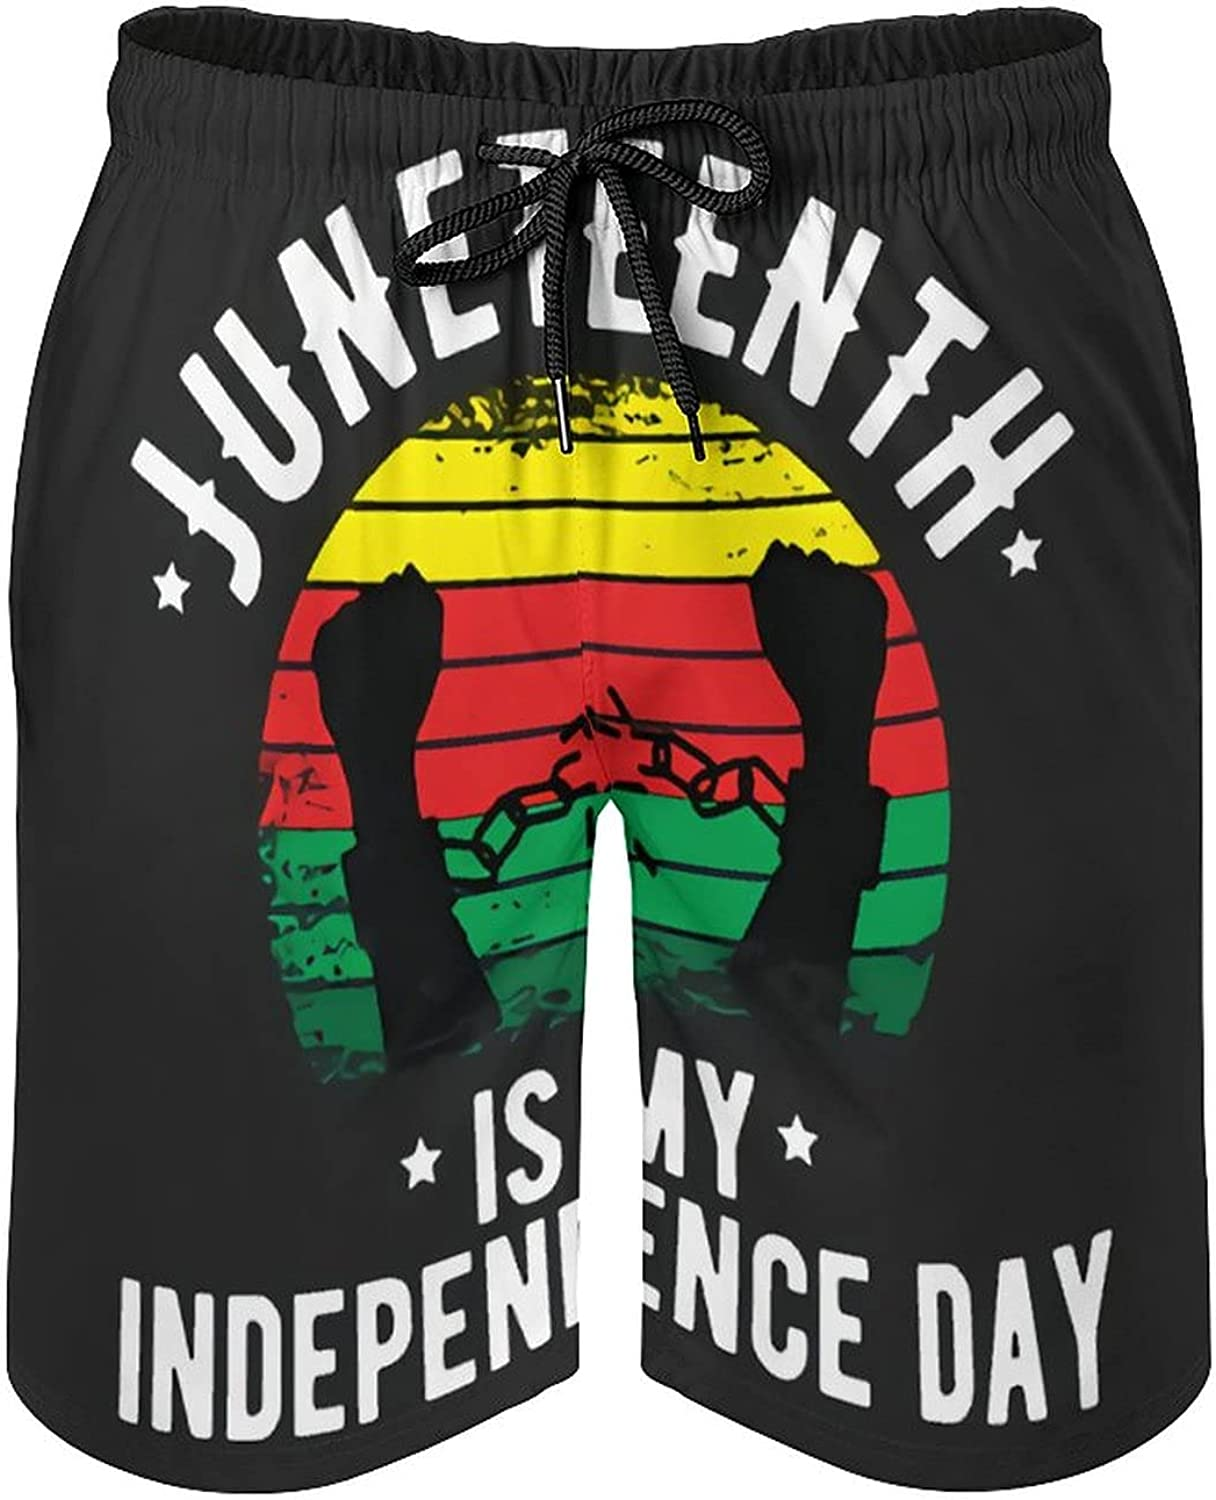 B&MAVIS Juneteenth is My Independence Day Funny Men's Summer Quick Dry Swim Trunks Casual Board Shorts Beachwear for Boys Men